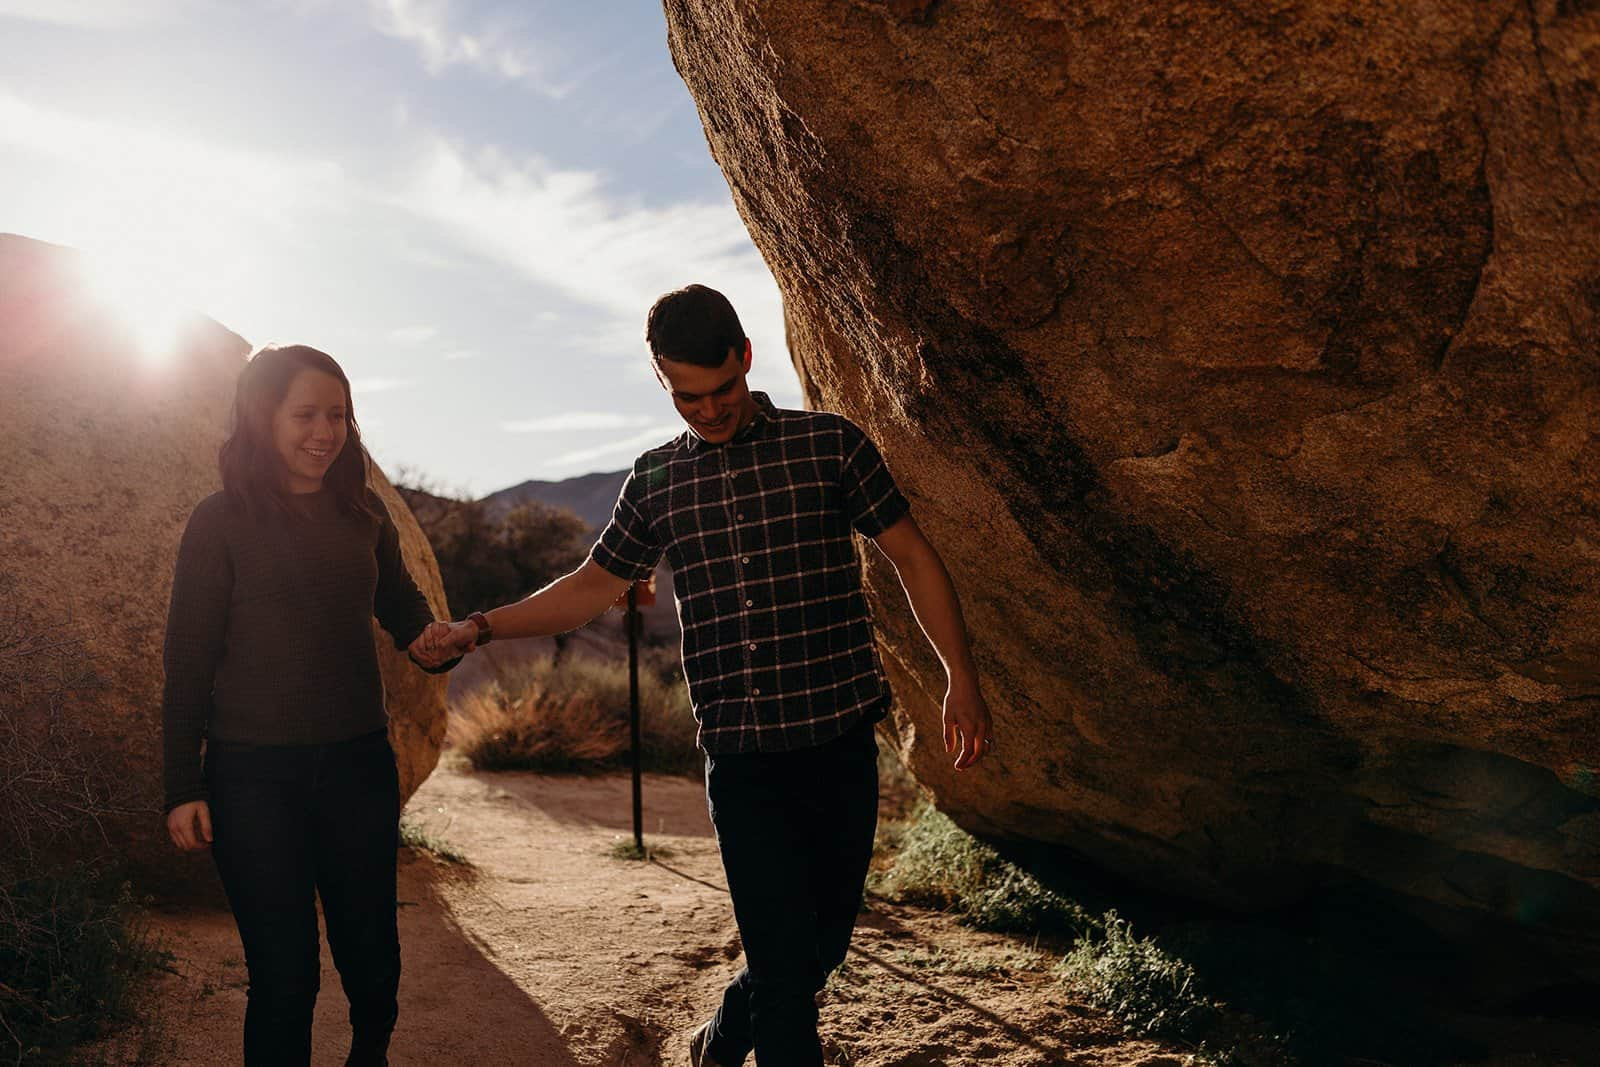 Couple laughs and walks towards cavern in Joshua Tree National Park